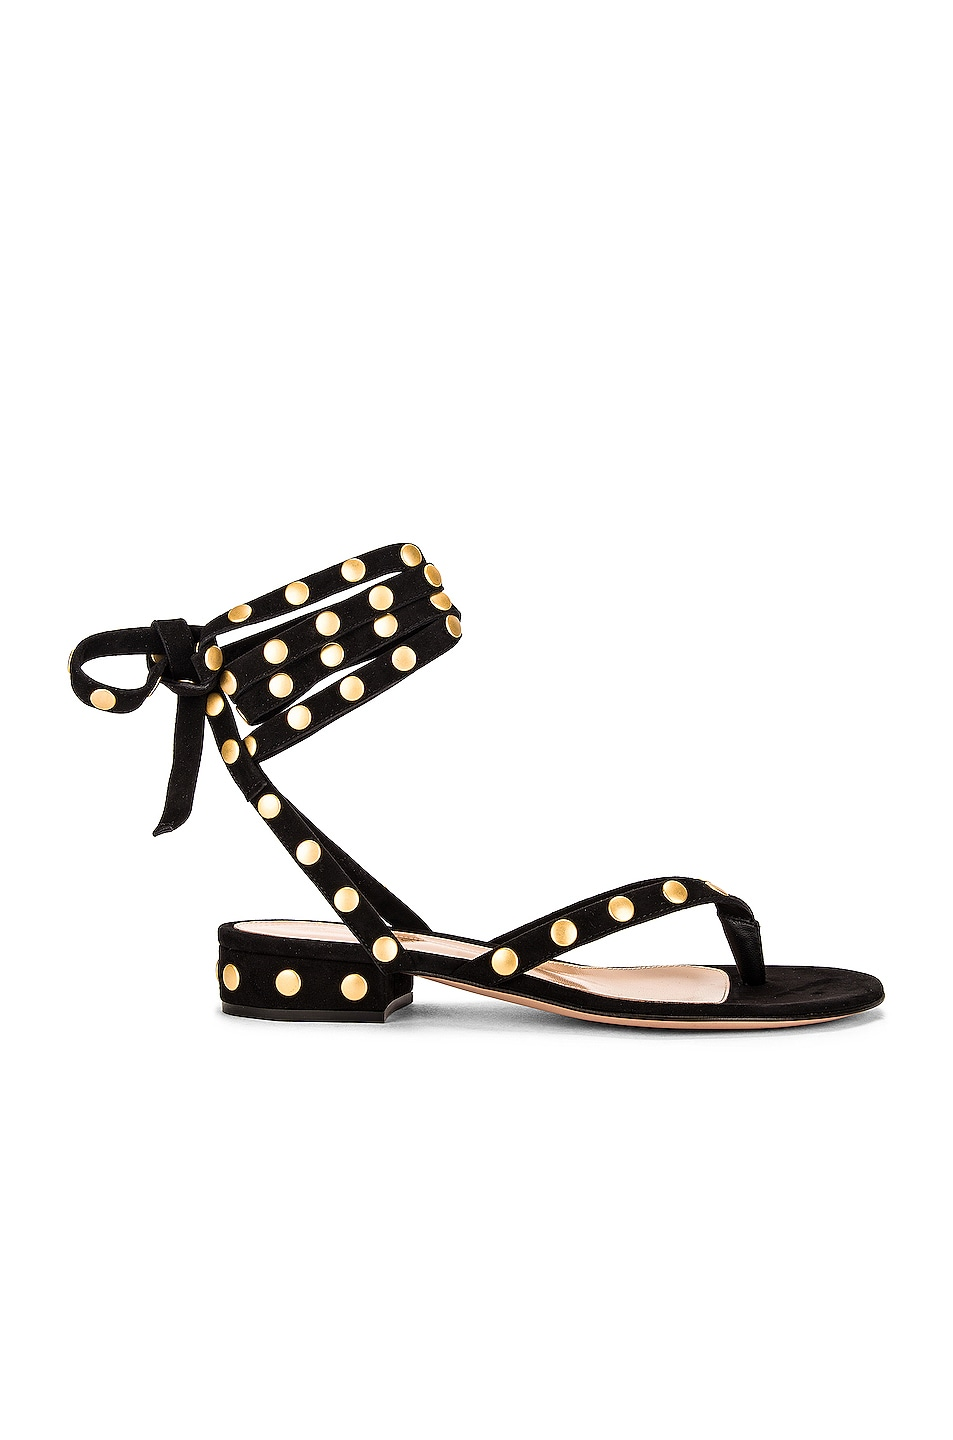 Image 1 of Gianvito Rossi Suede Stud Sandals in Black